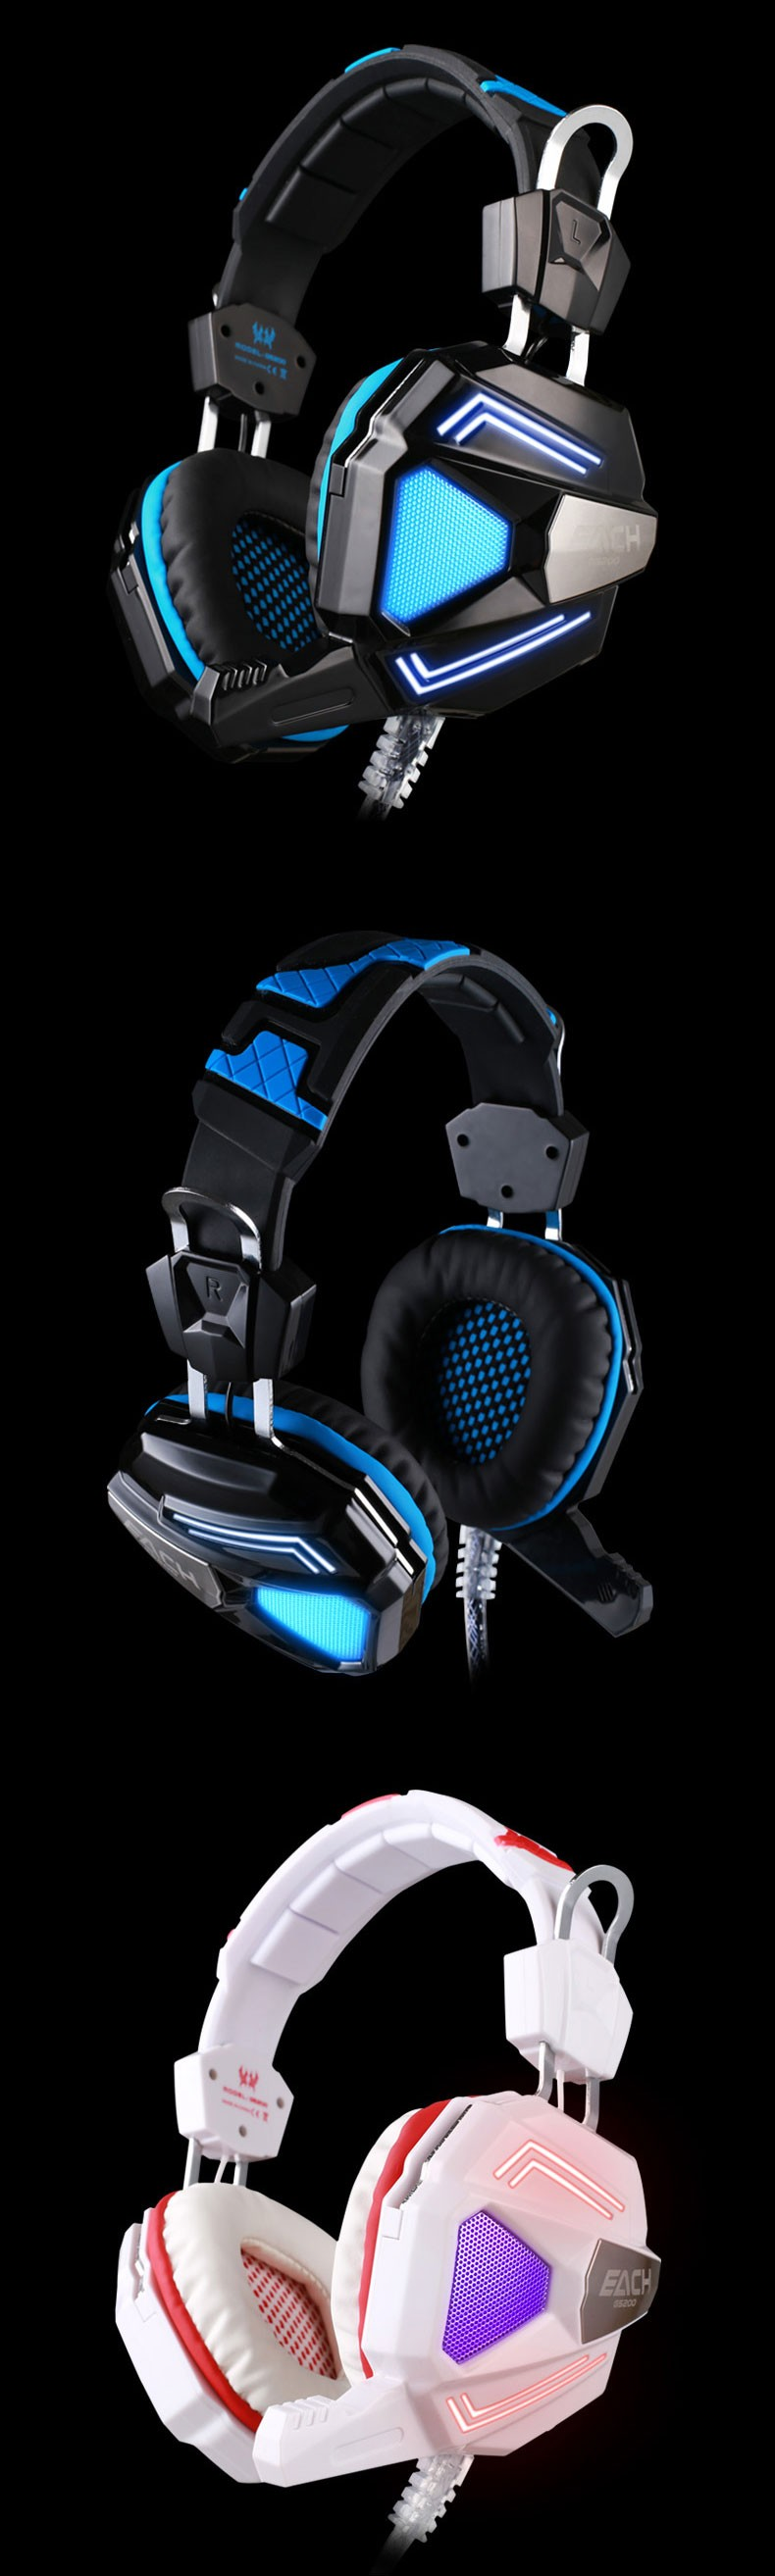 Each G5200 Rrofessional Gaming Headphones Casque Audio Built-in 7.1 Virtual Surround with MIC Vibration Luminous Earphone